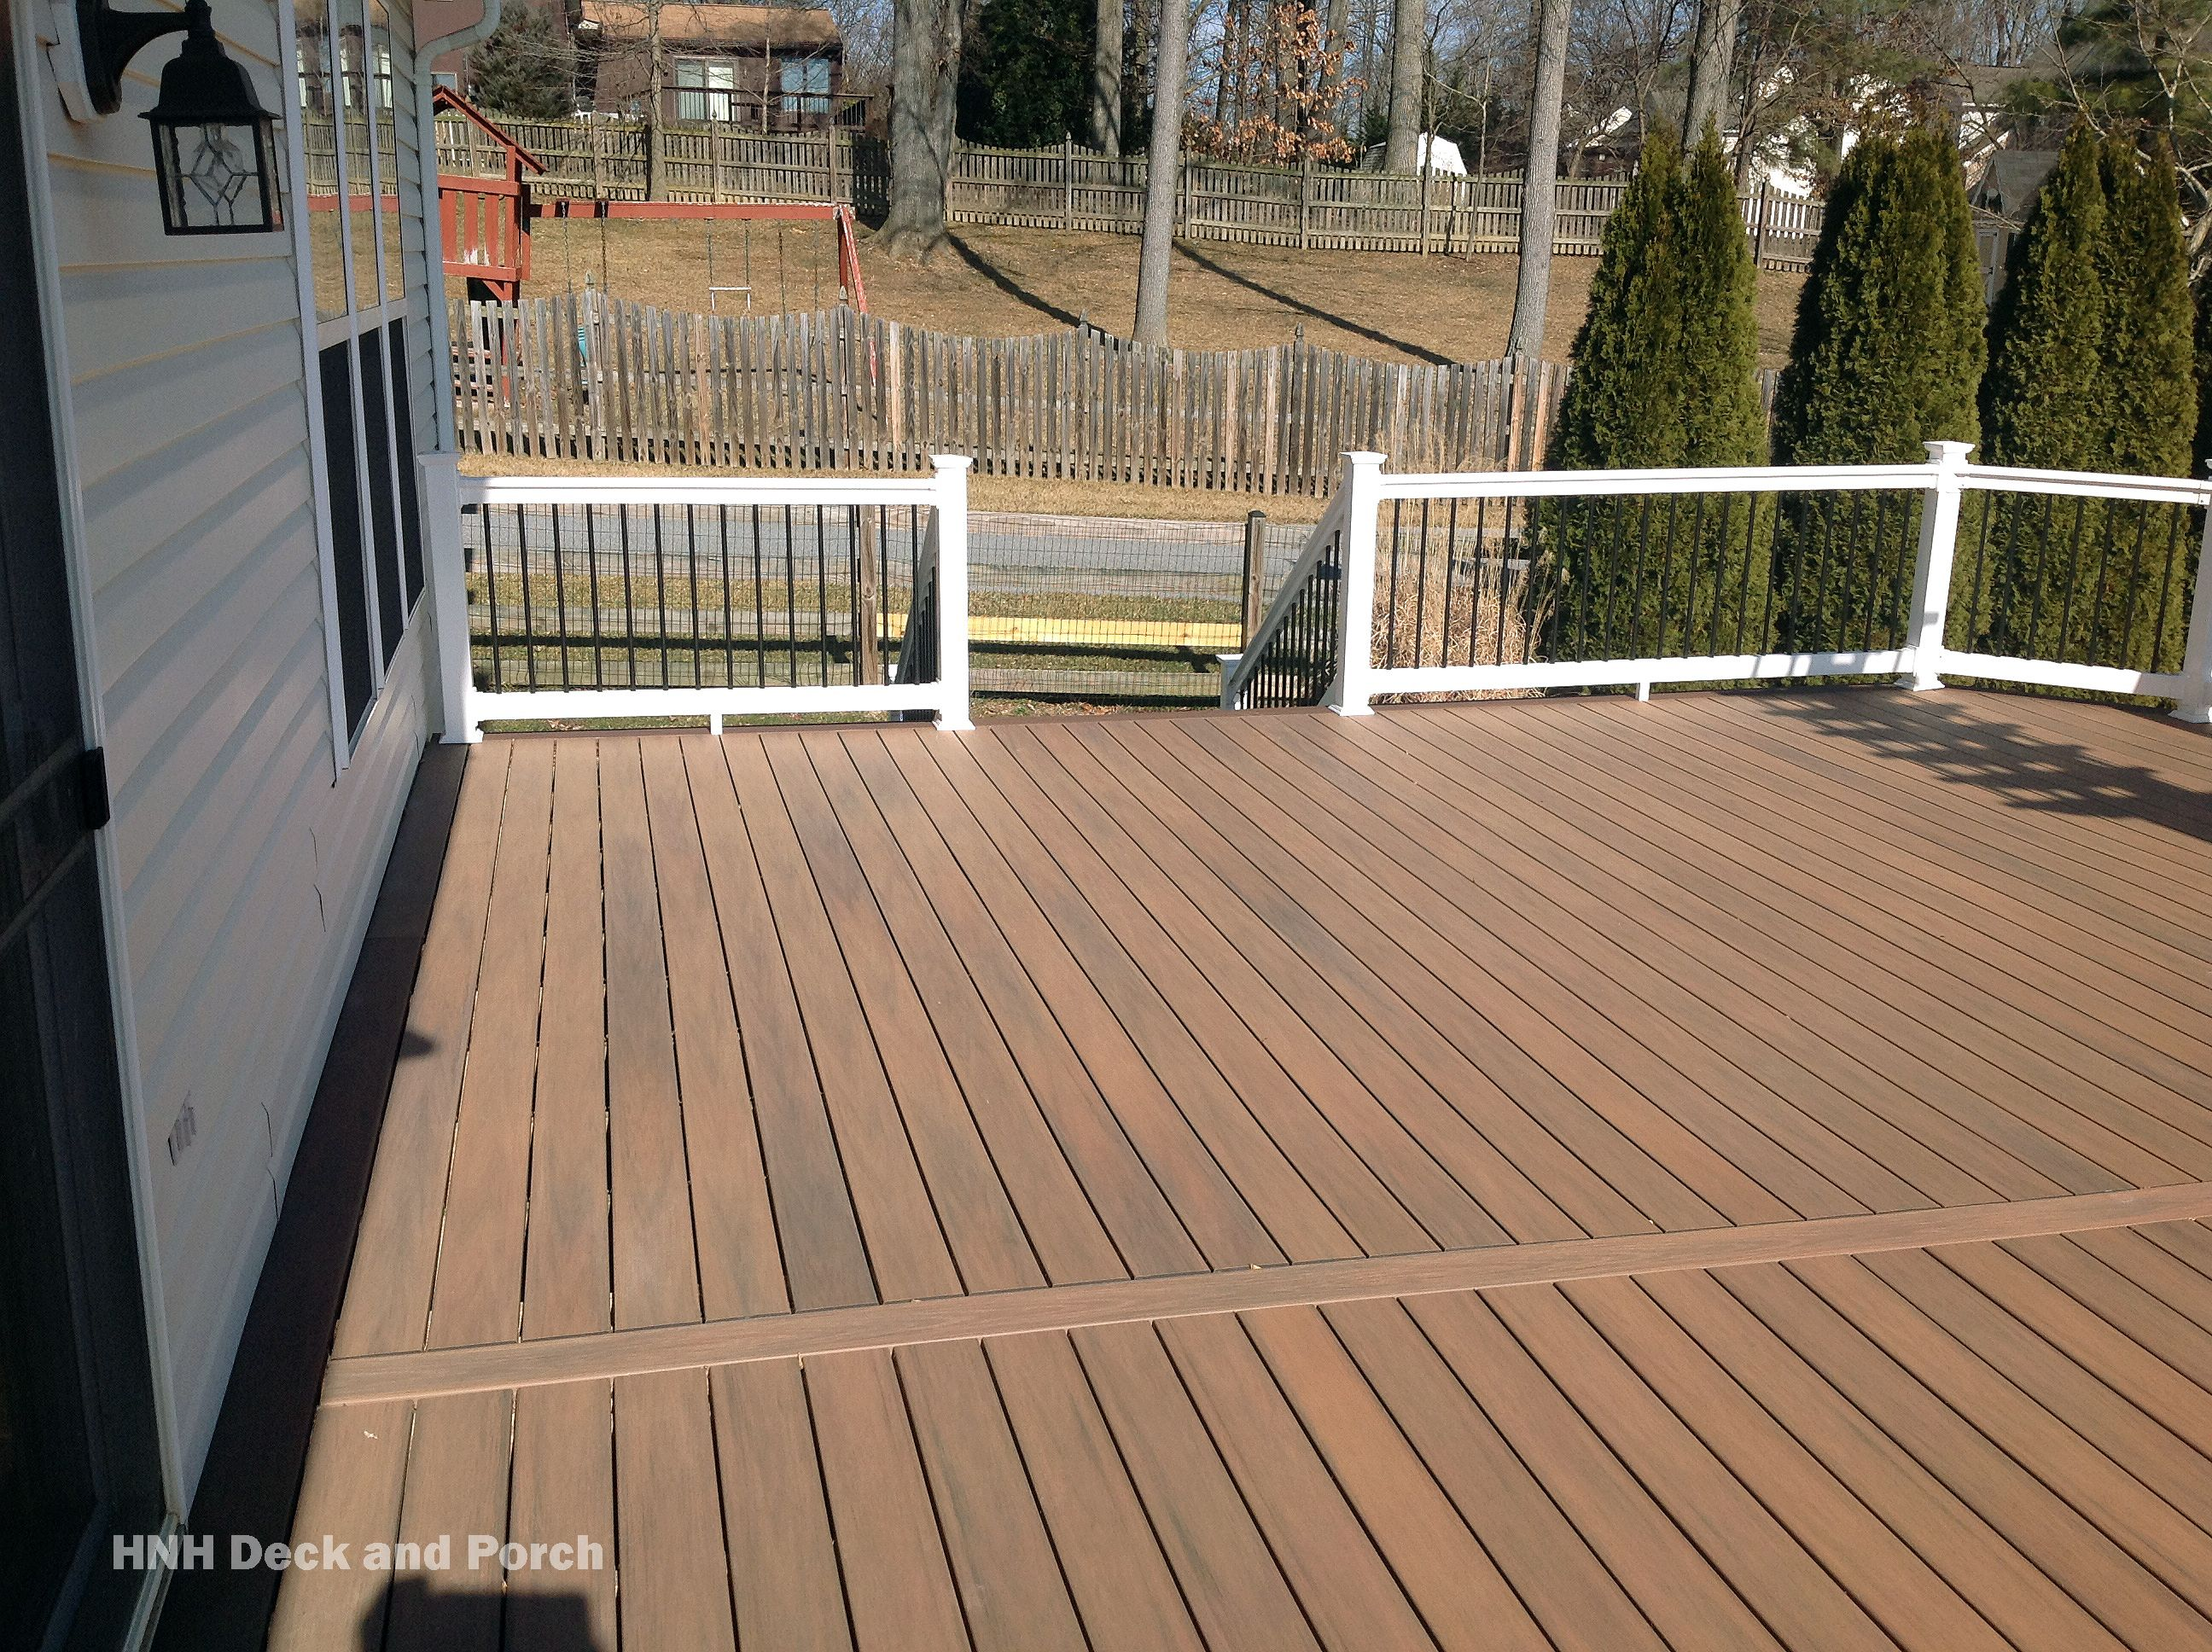 Vinyl Deck Using Wolfbuilding Amberwood Decking Deck Flooring Deck Decks And Porches